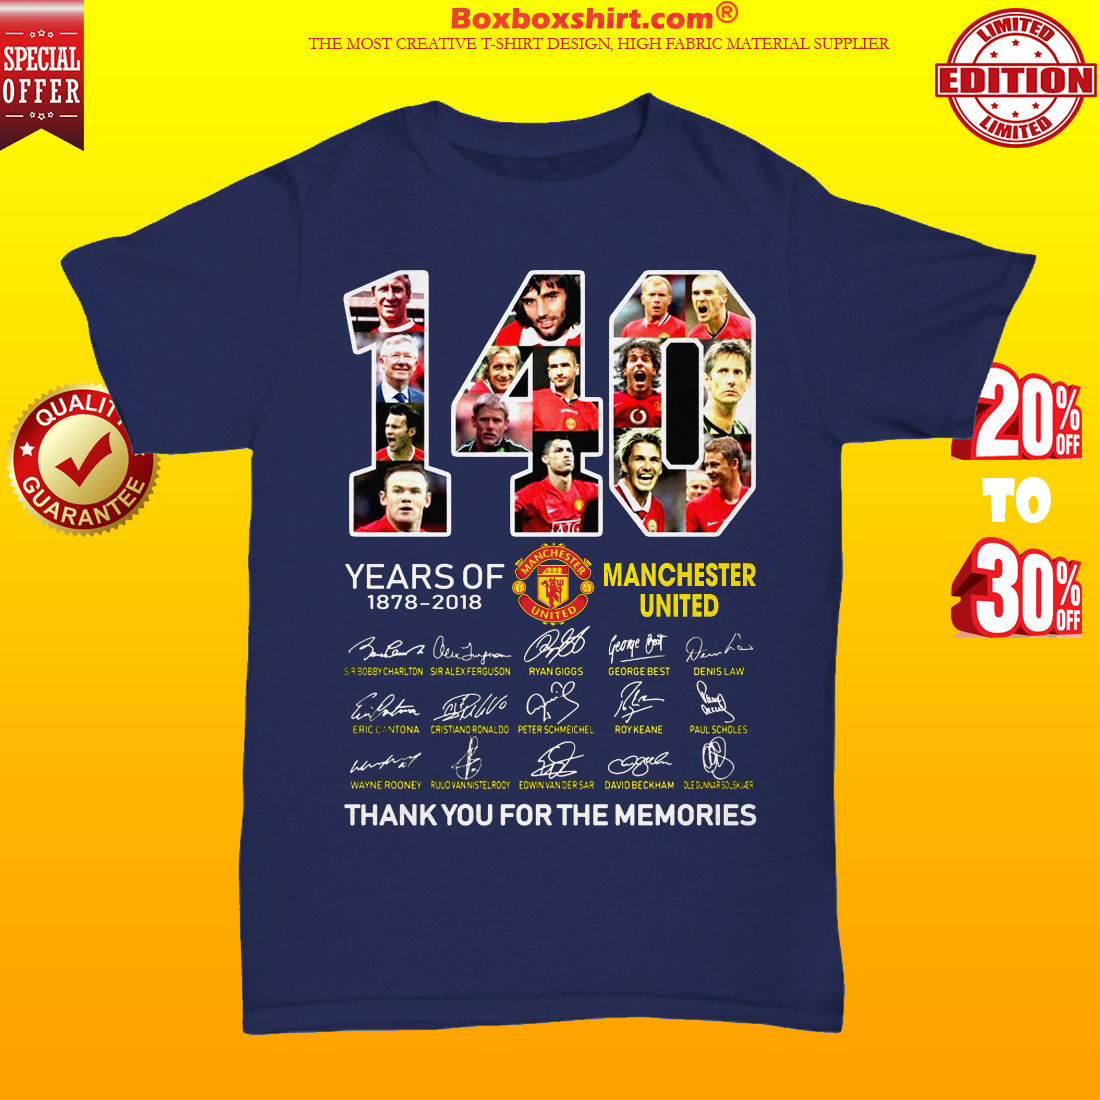 140 years of Manchester United thank you for memories unisex tee shirt